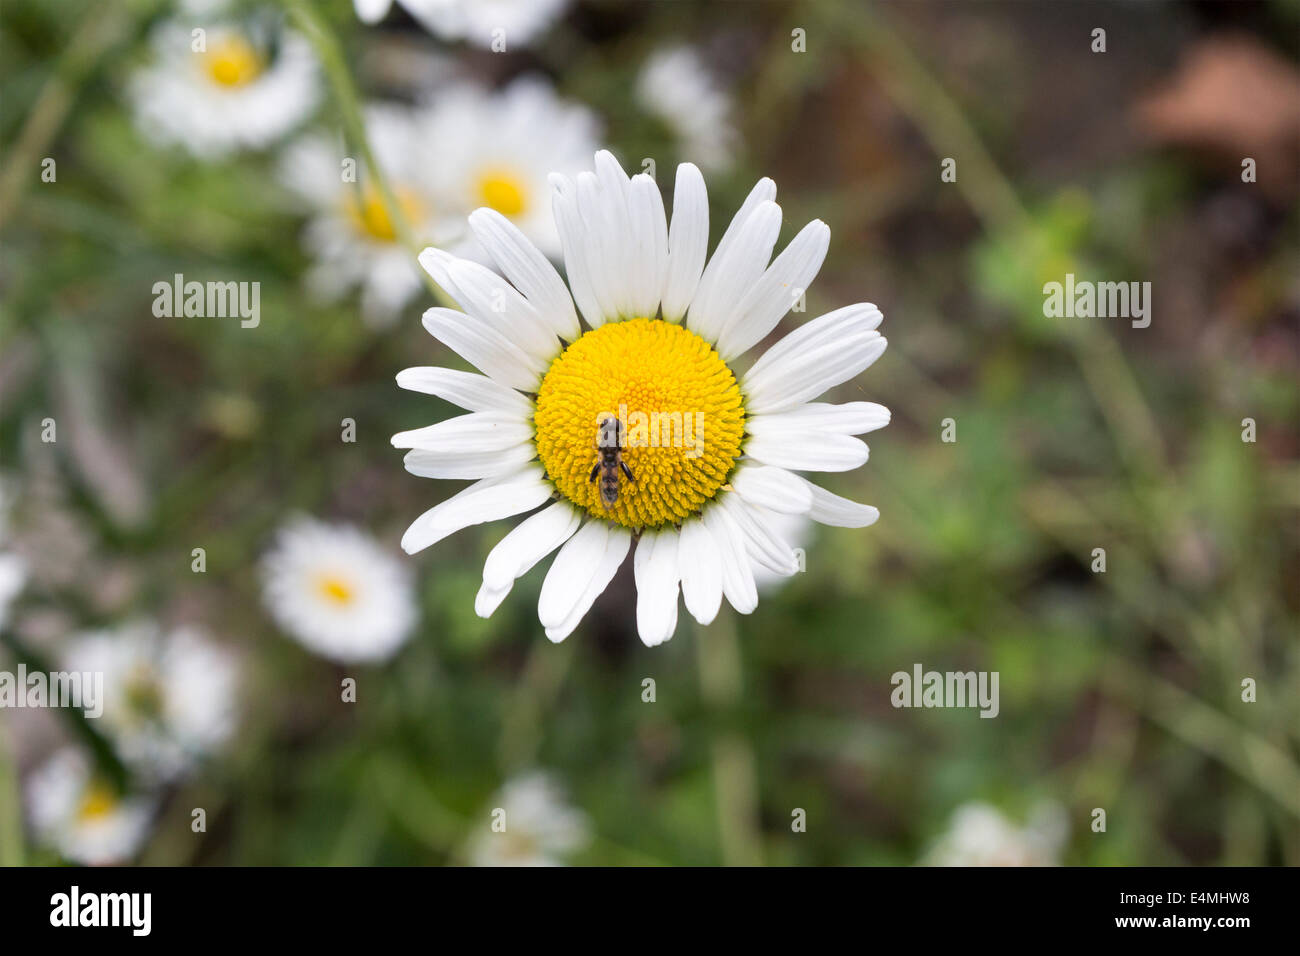 Insect on a wild daisy feeding on nectar. - Stock Image